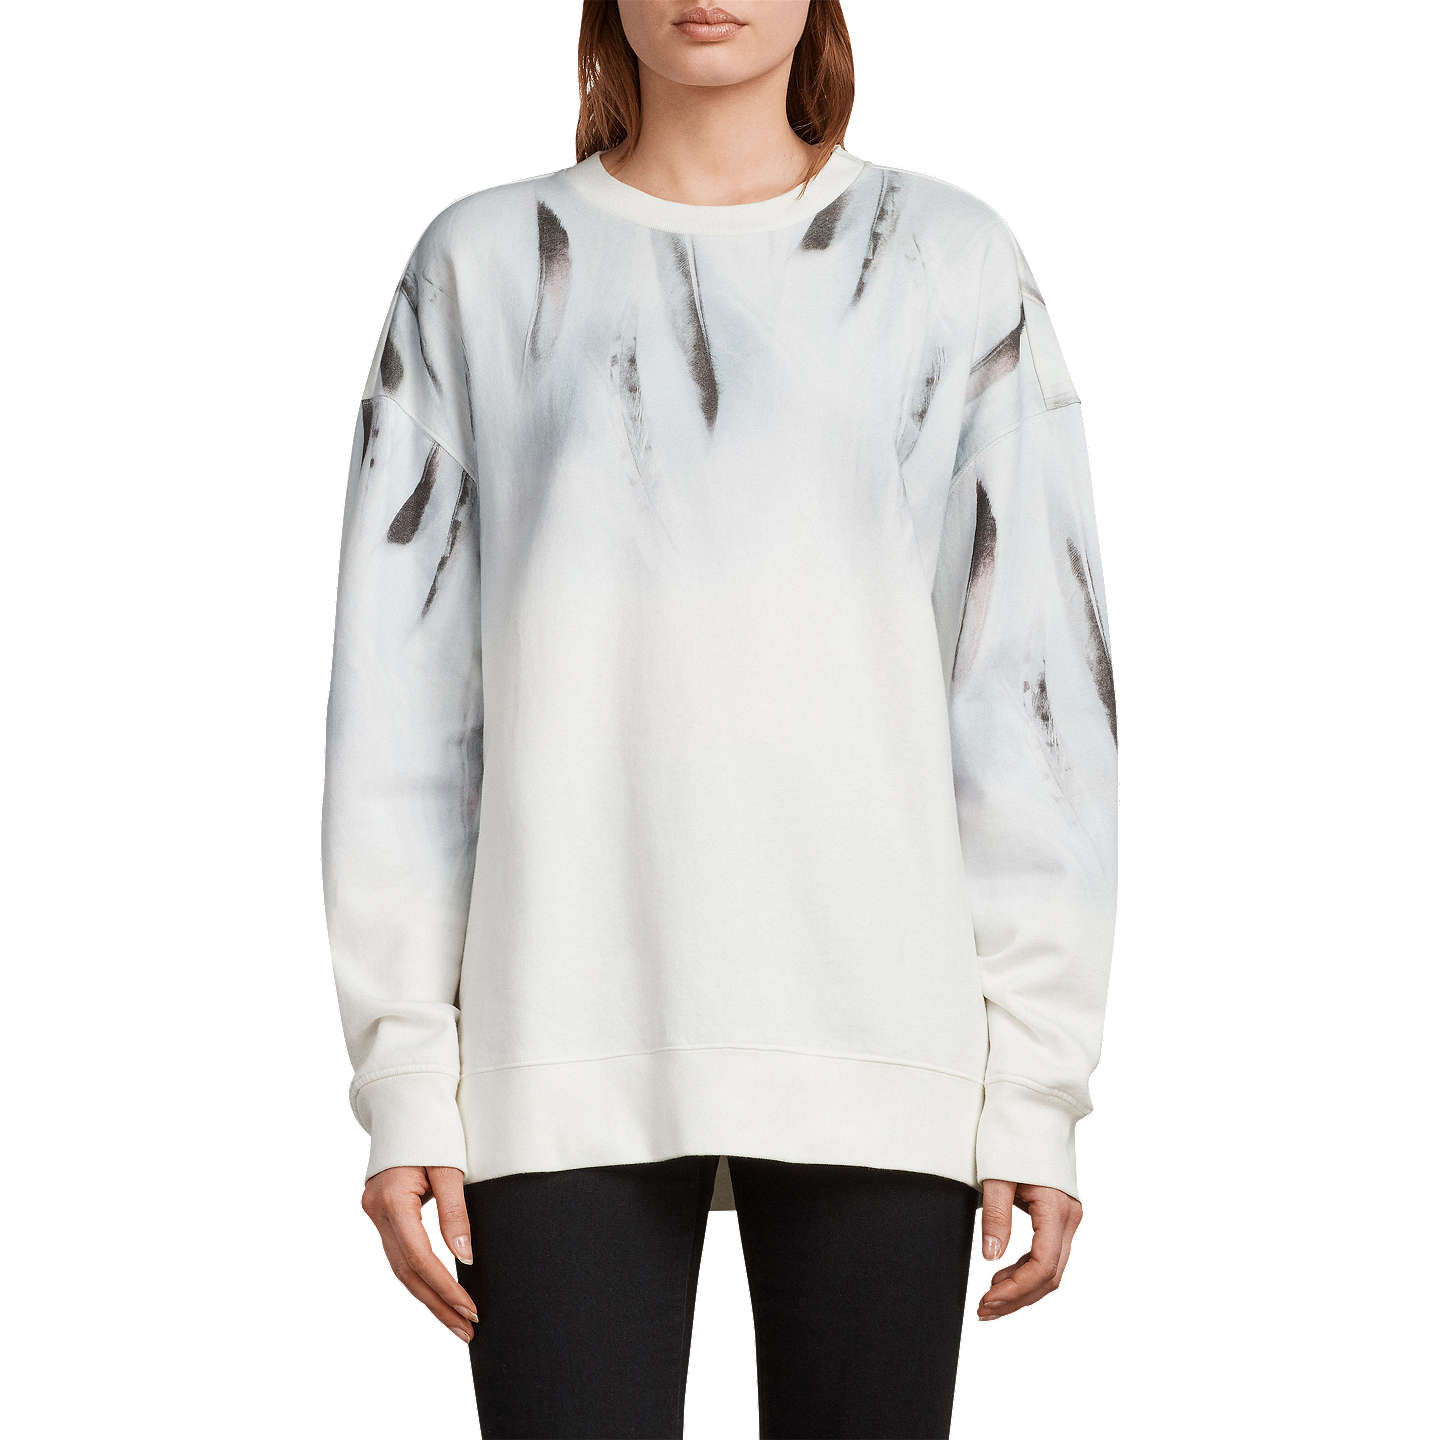 BuyAllSaints Plume Joy Sweater, Chalk White, XS Online at johnlewis.com